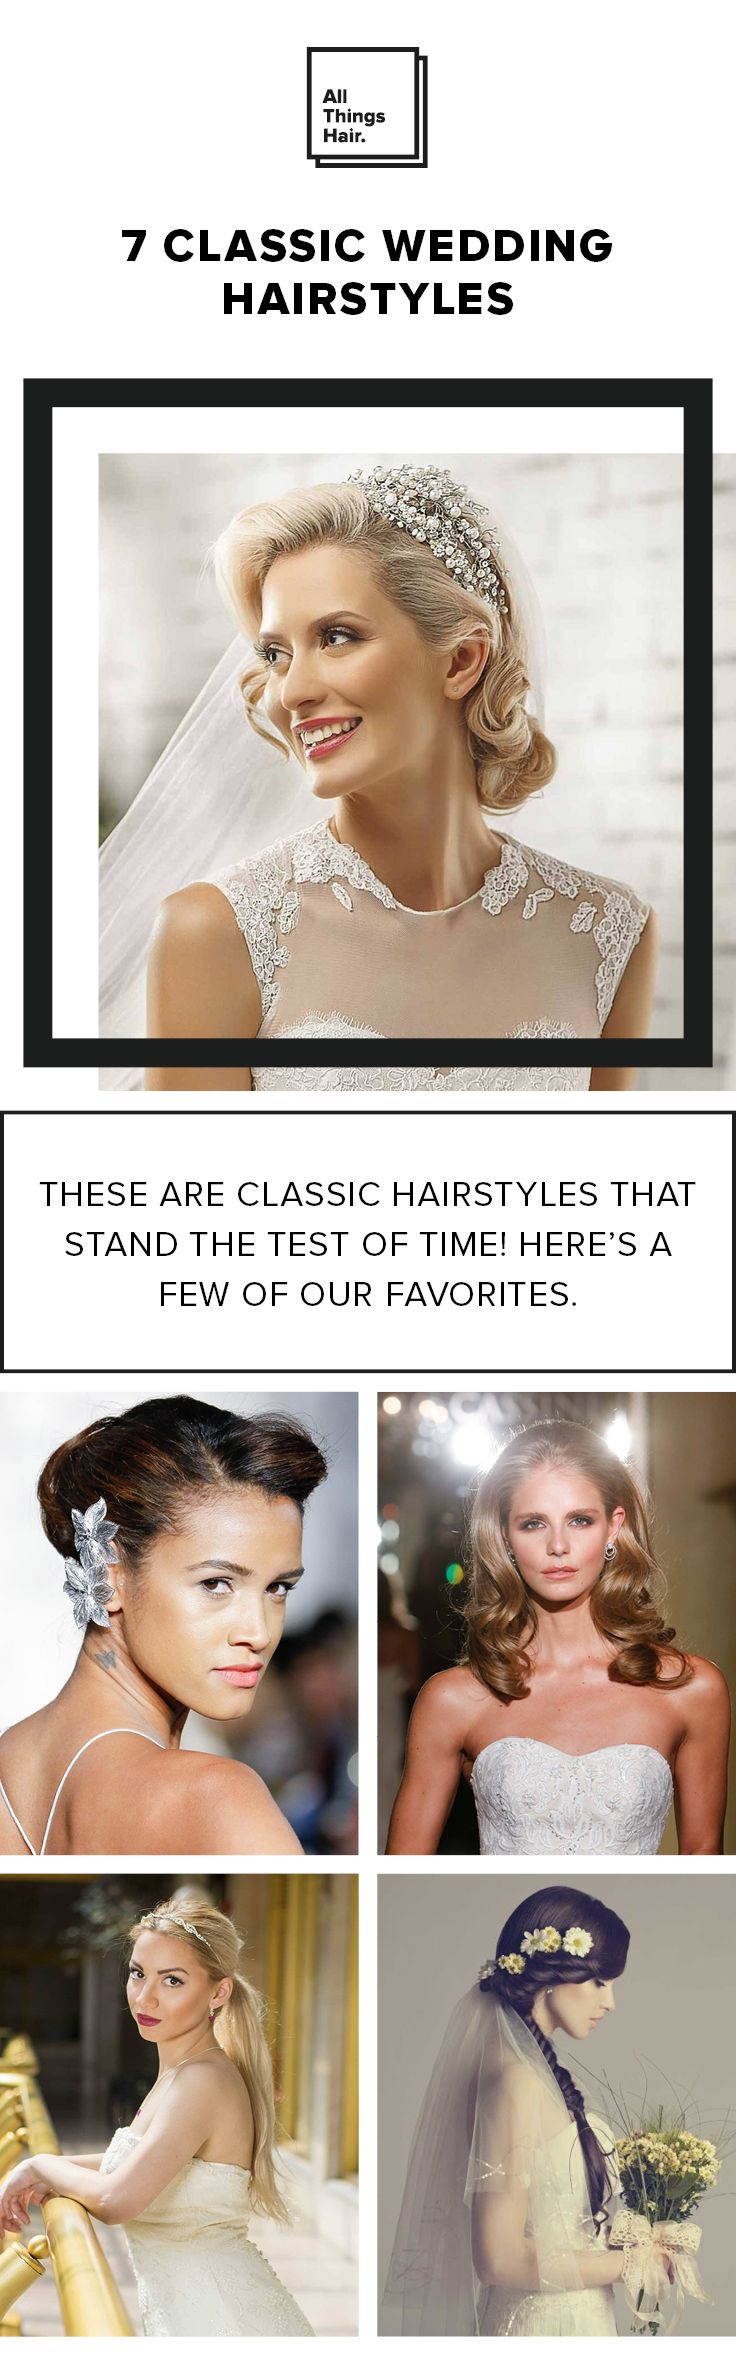 12 best Bridal Hairstyles images on Pinterest | Bridal hairstyles ...